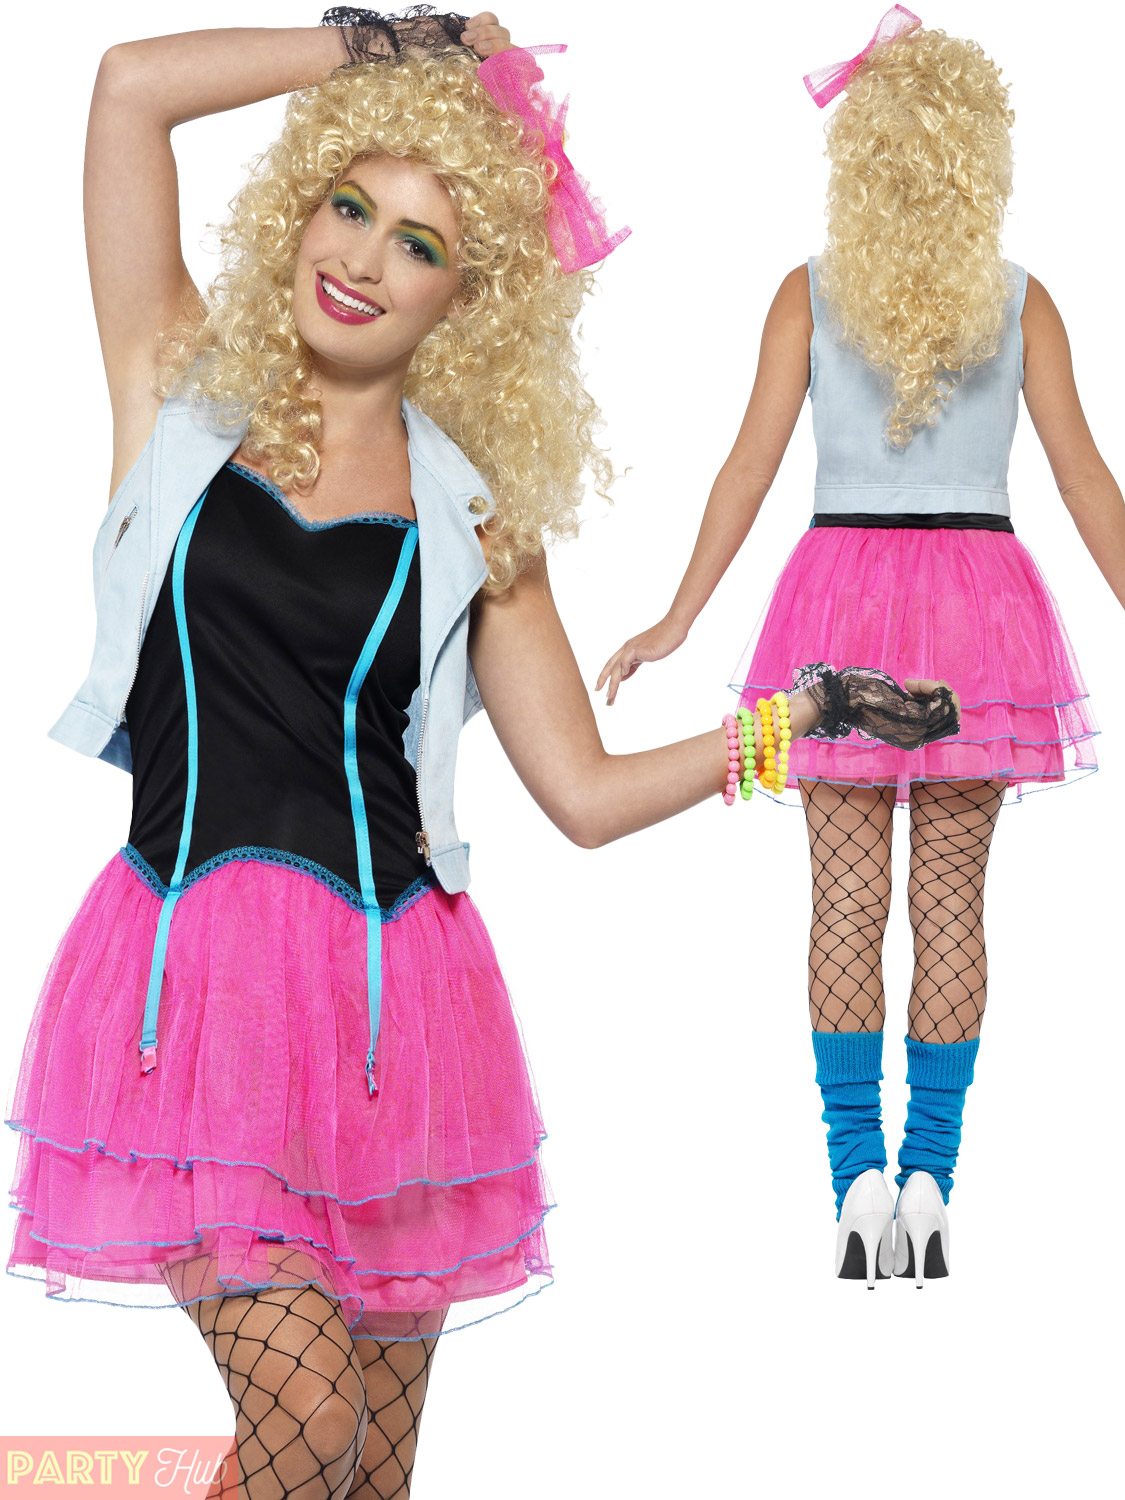 e7d9a32a8c5 80s Disco Costume   Image Is Loading SKATER-GIRL-LADIES-1980S-FANCY ...